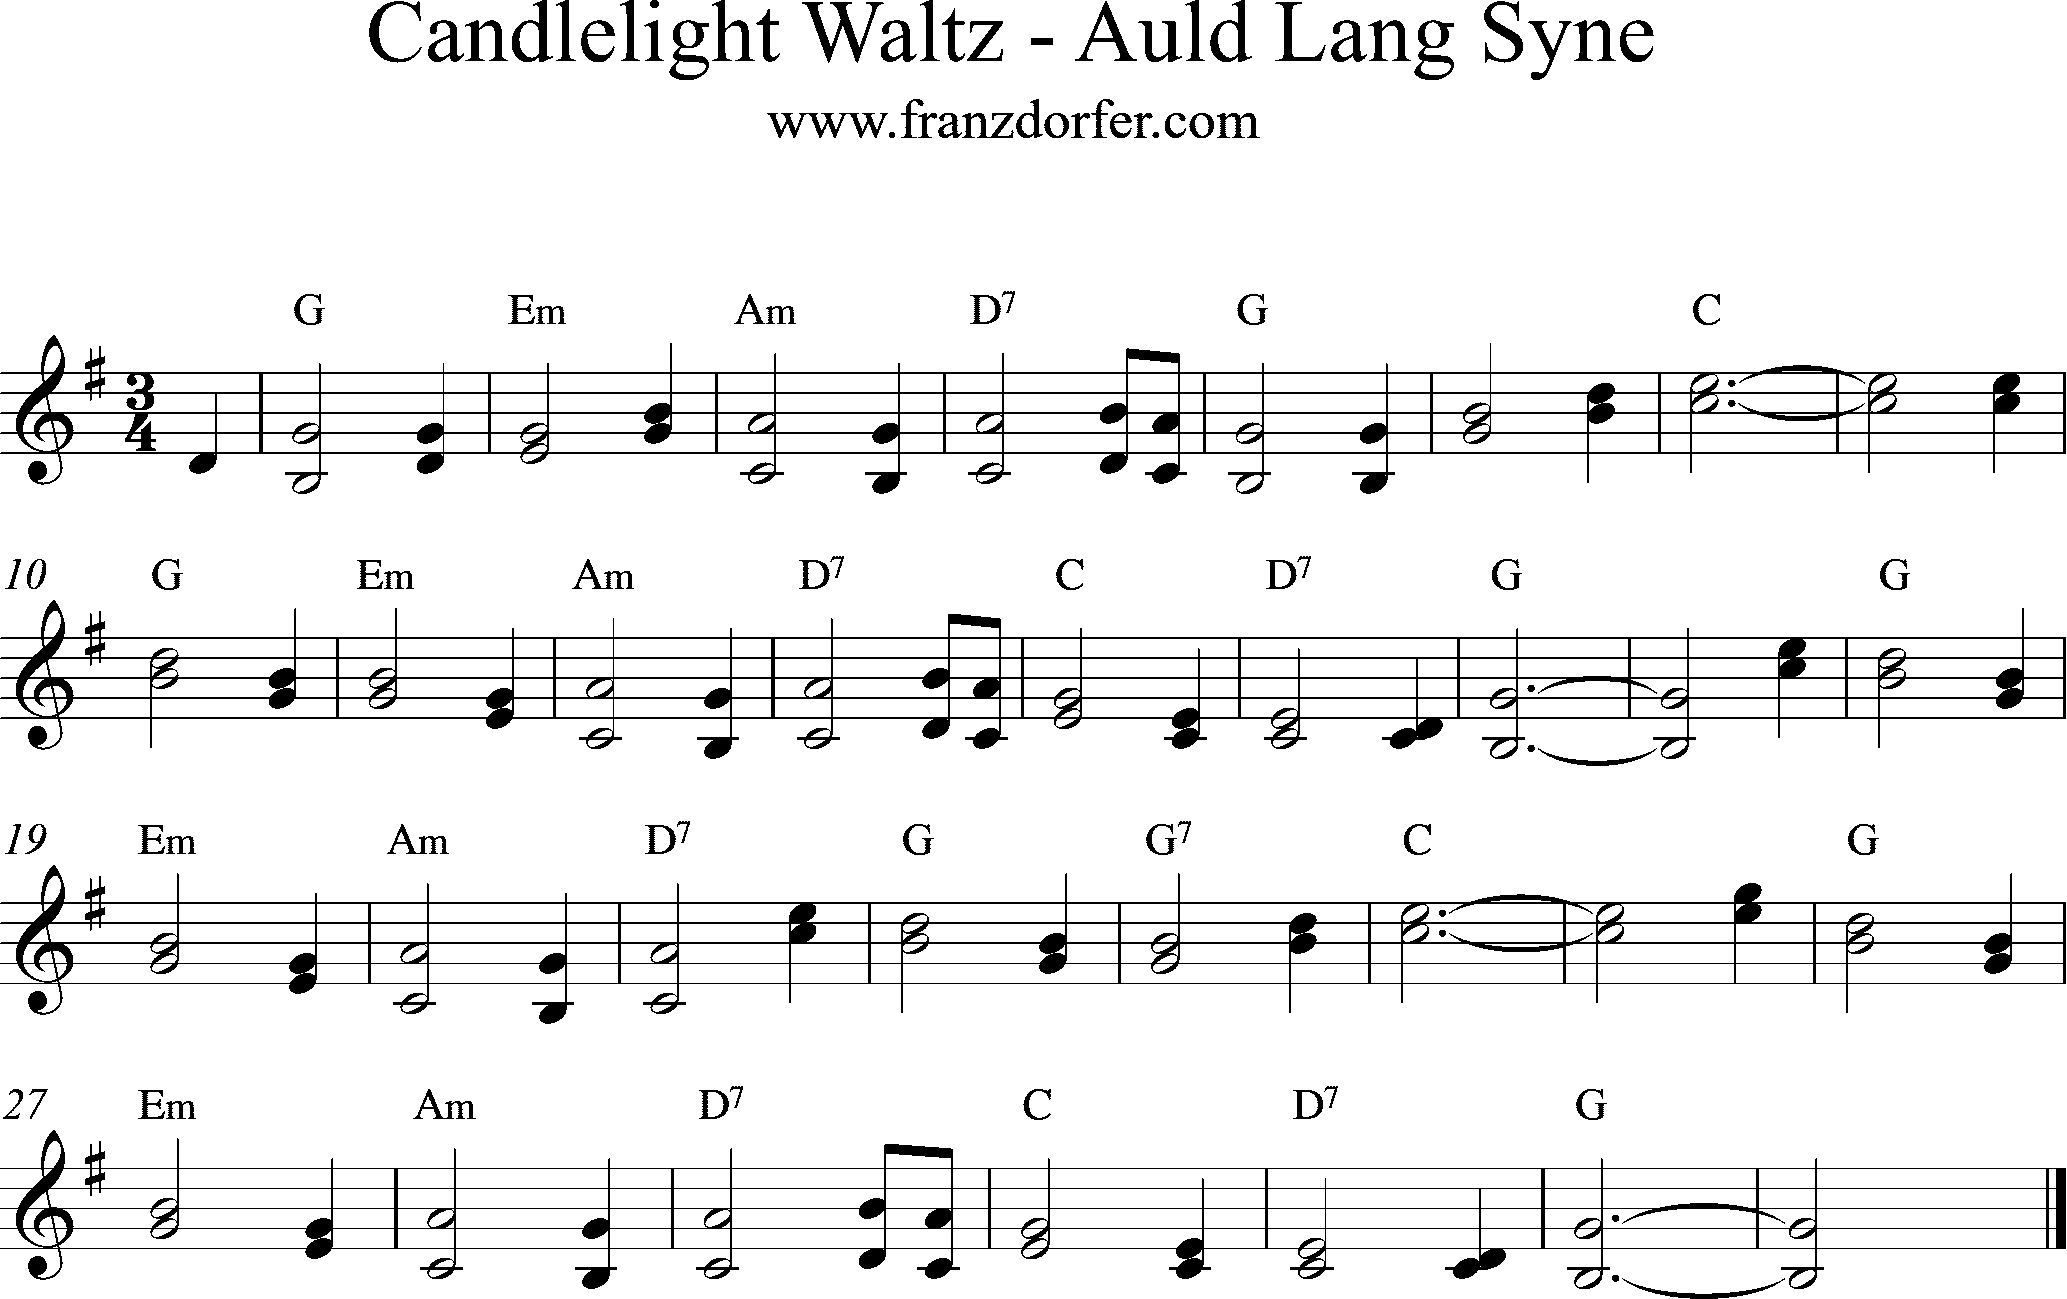 Noten - Candlelight Waltz